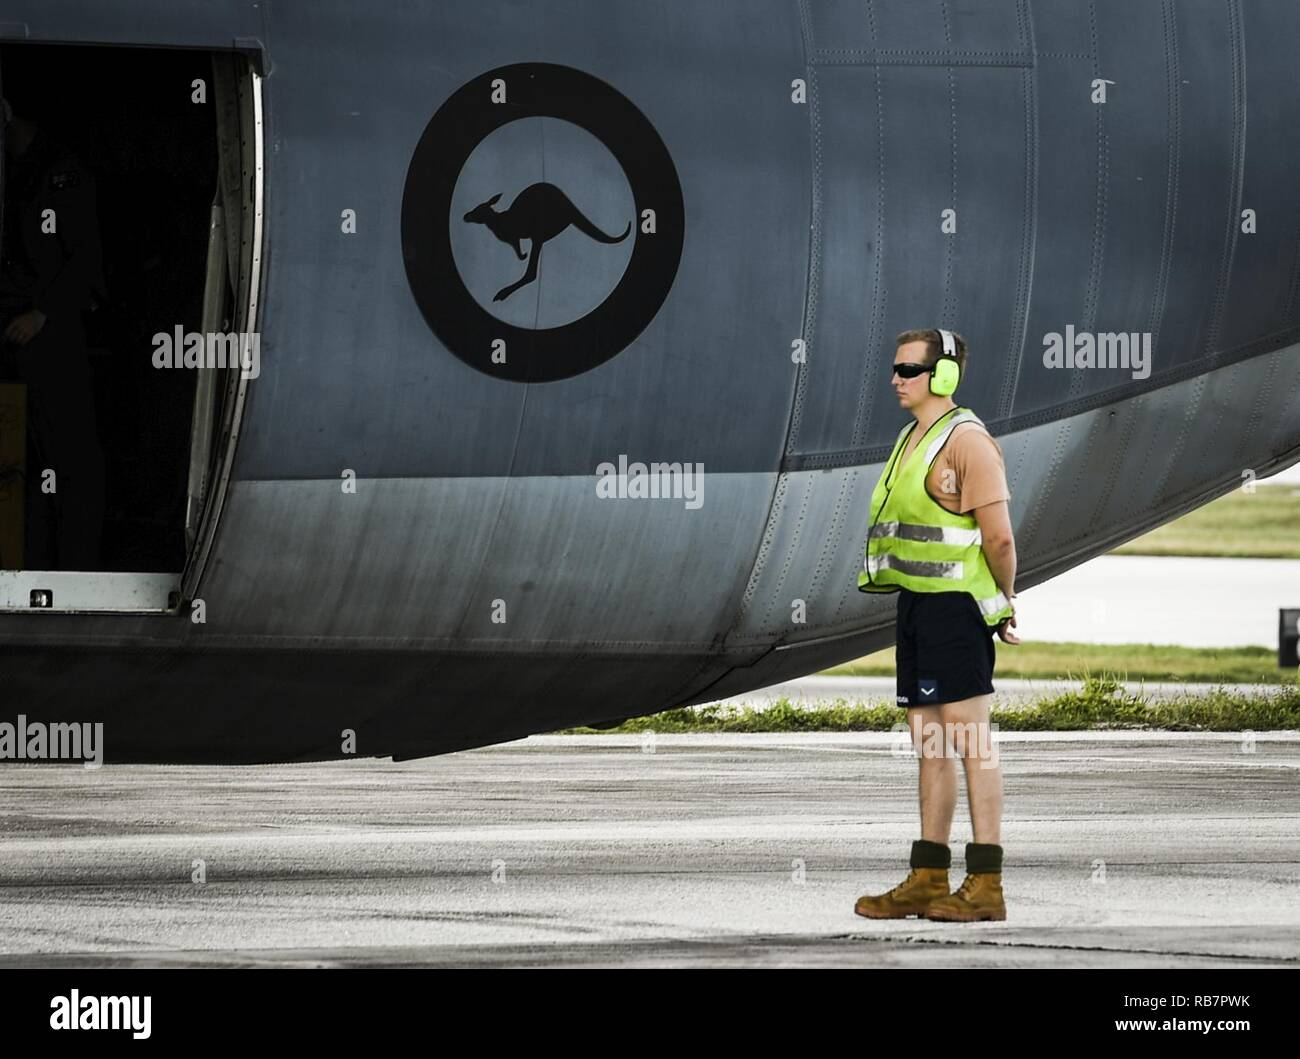 A maintainer with the Royal Australian Air Force waits to marshal a C-130J Super Hercules for takeoff during Operation Christmas Drop at Andersen Air Force Base, Guam, Dec. 7, 2016. The RAAF sent a C-130J to OCD to train with the 36th Airlift Squadron and the Japan Self Defense Force, helping participants understand each other's techniques and giving them a chance to offer each other insight. Bilateral training improves participants's abilities to work together during real world scenarios, such as delivering disaster relief supplies. - Stock Image